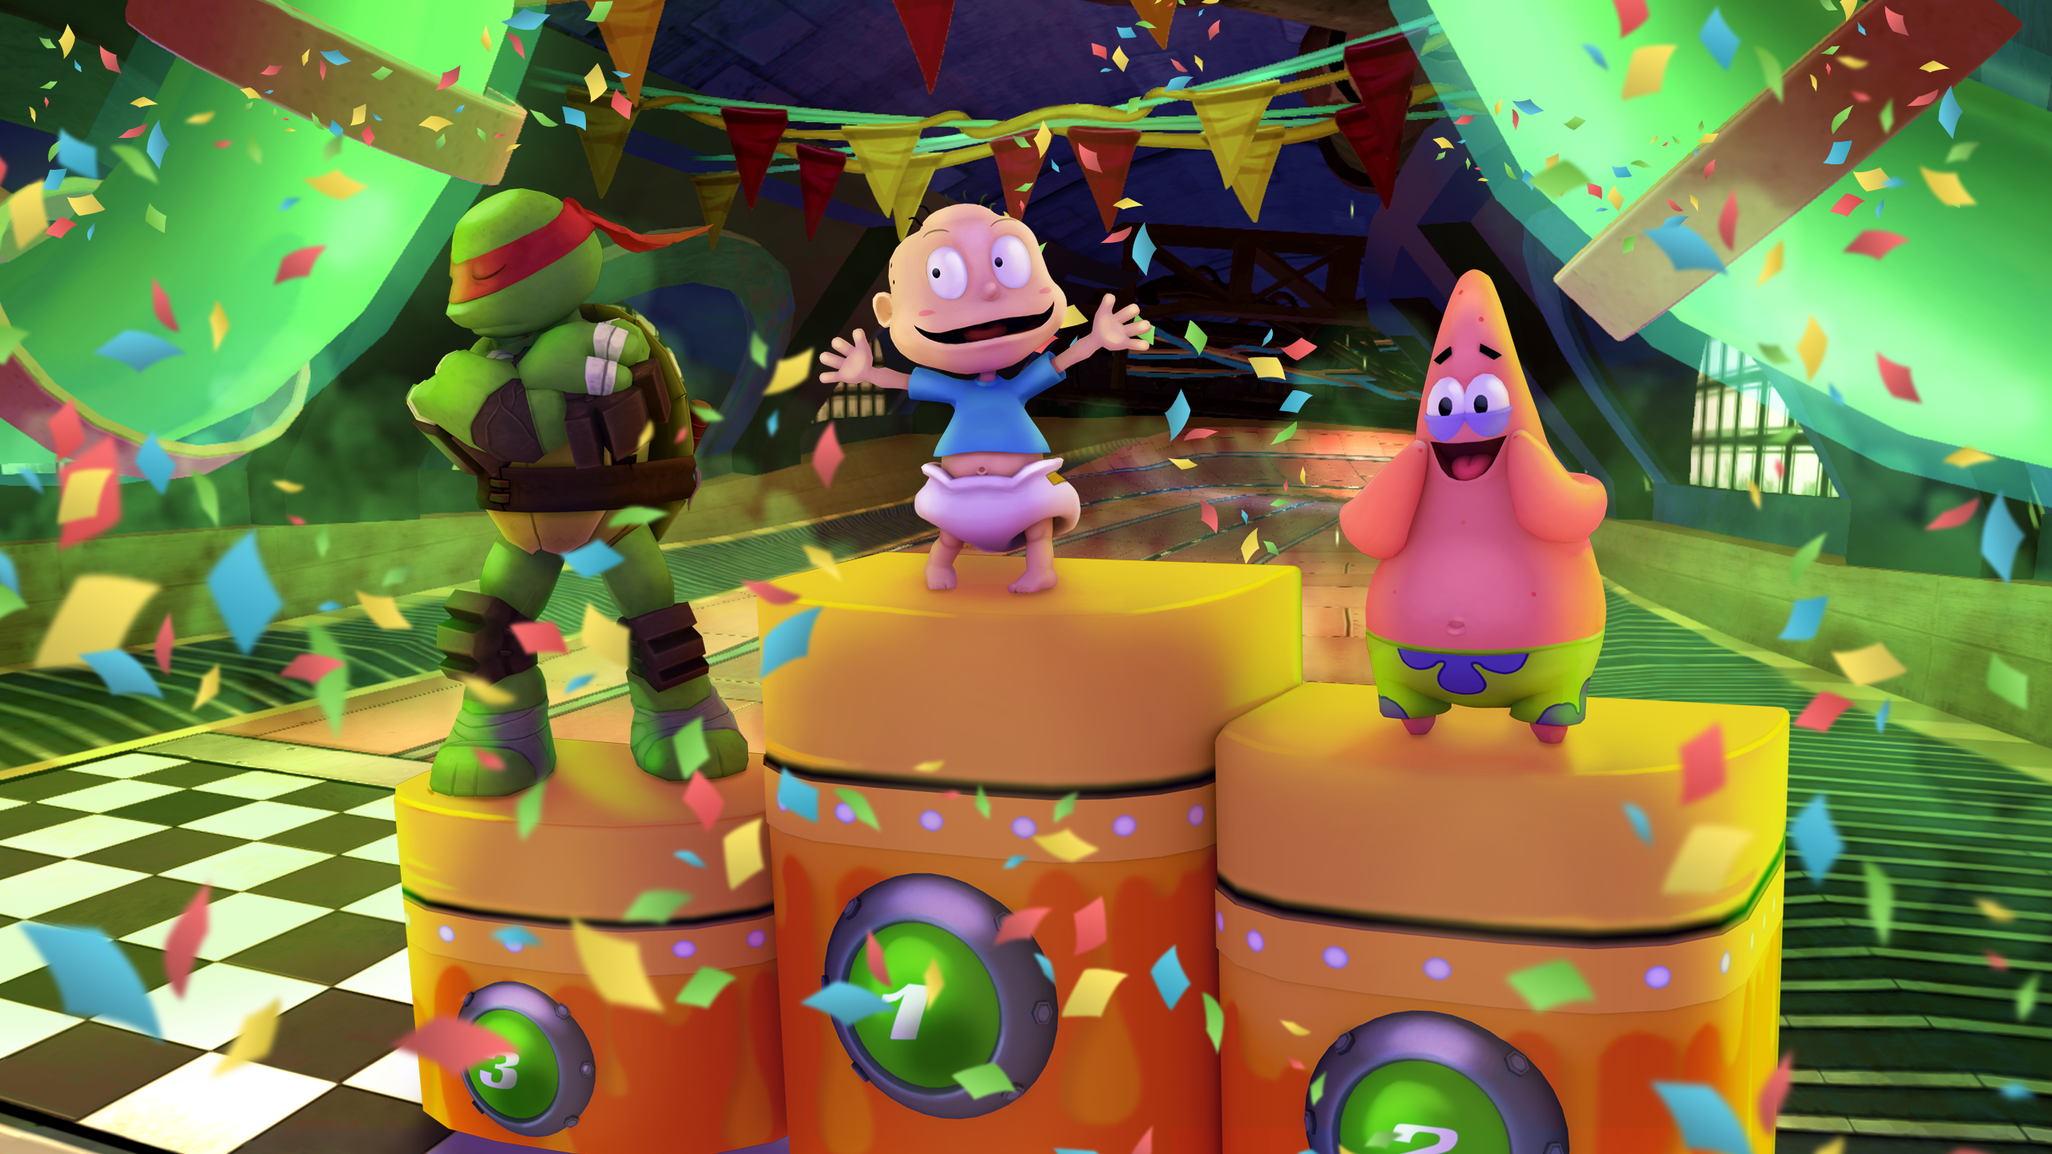 Nickelodeon Kart Racers features some of your favourite animated characters